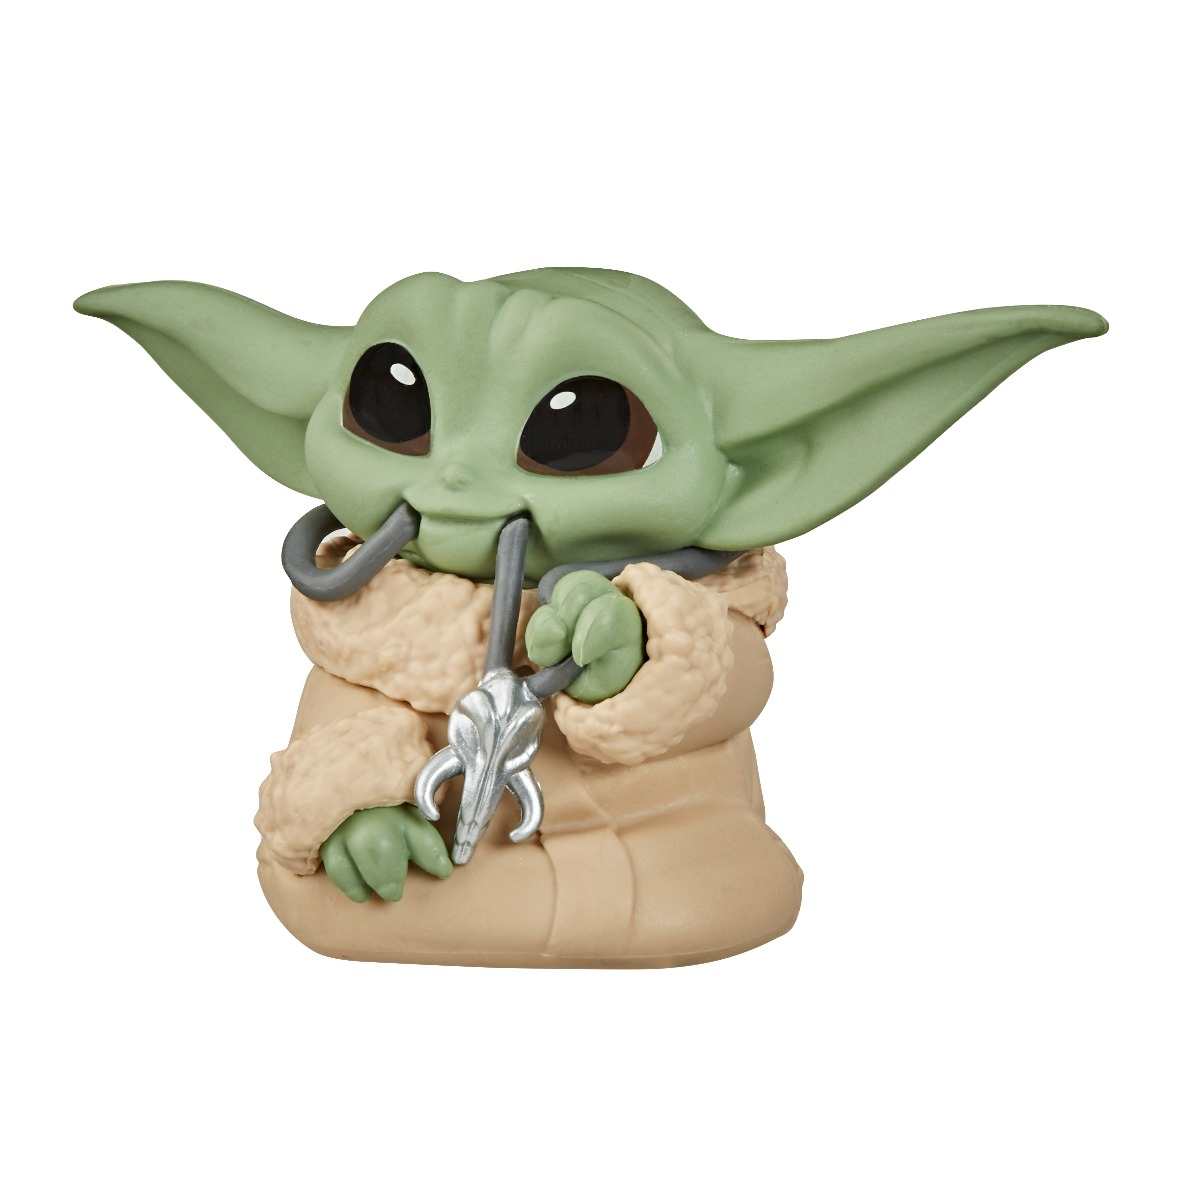 Figurina Star Wars Baby Yoda, Necklace, F14805L00, 6 cm